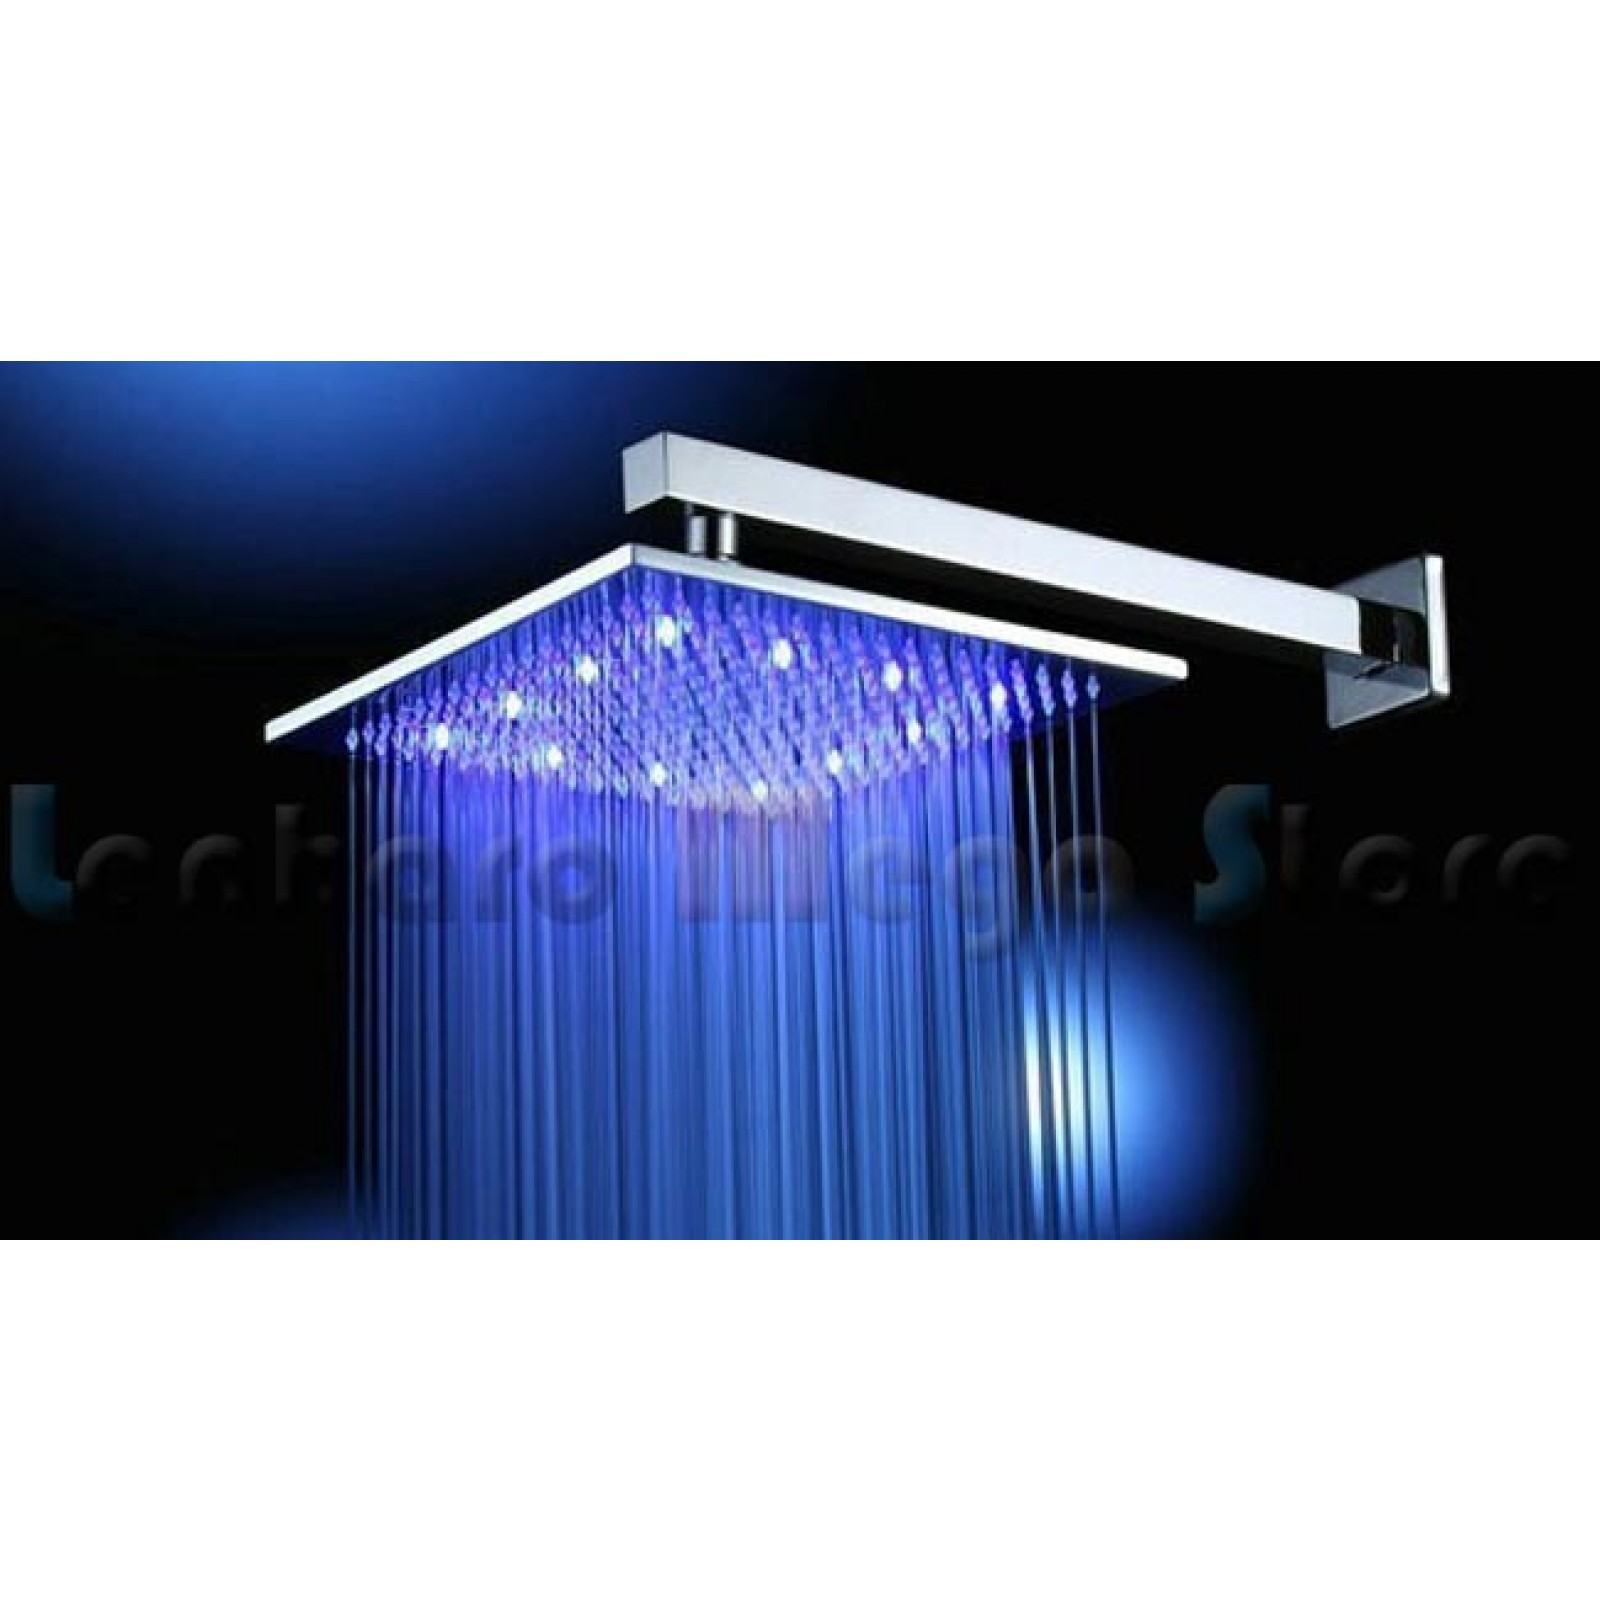 Ducha de metal com led 40cm x 40cm cromada lms 004 1 for Led para ducha